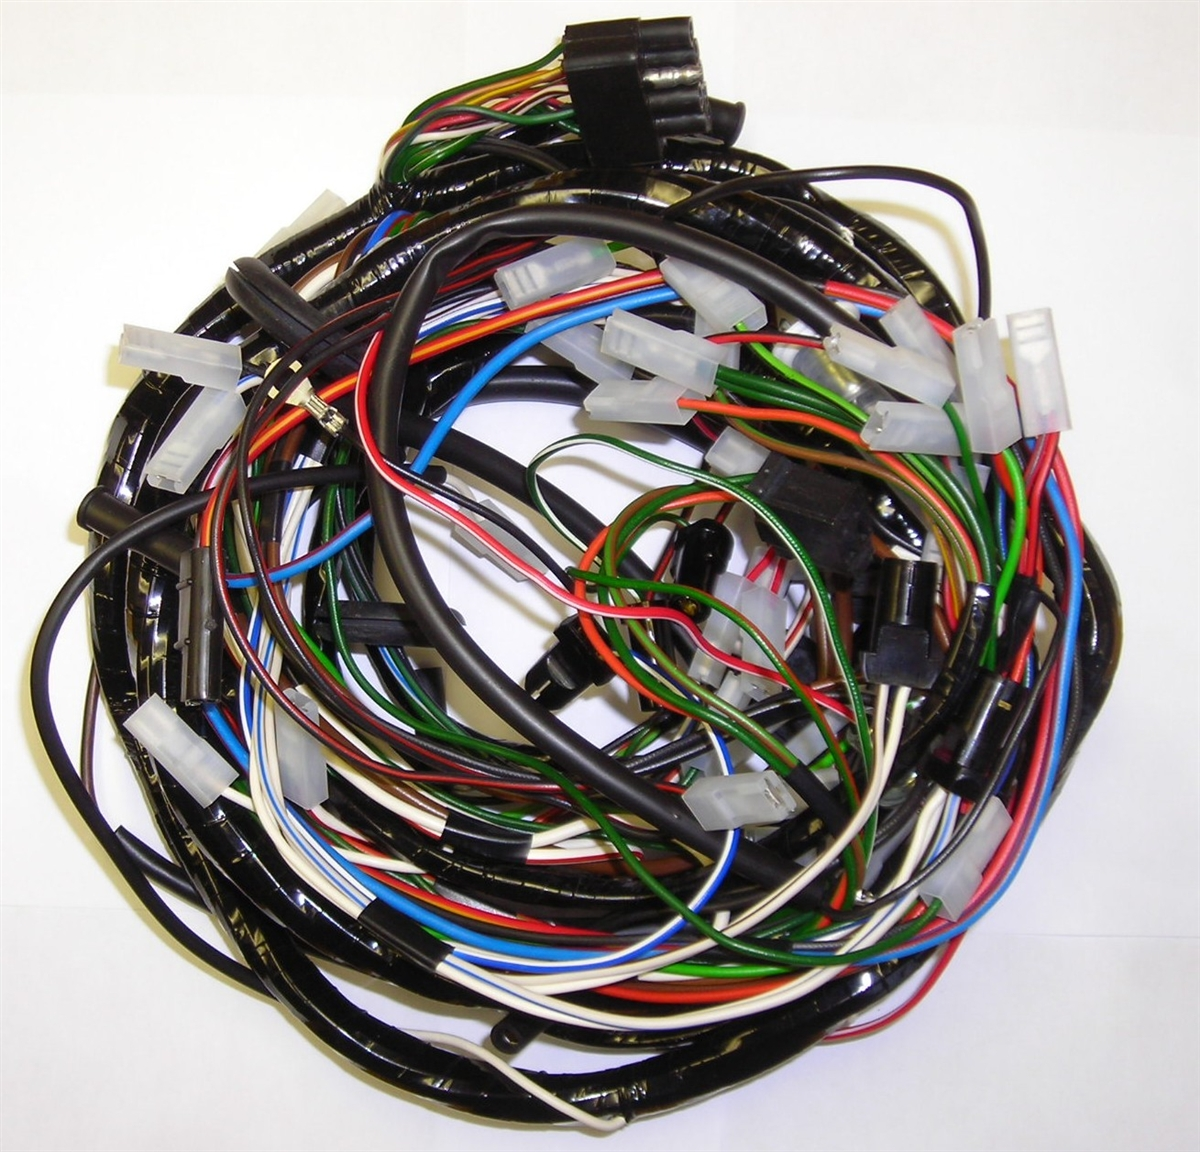 LR306 2?1402646650 rover series 3 main wiring harness land rover series 3 wiring loom diagram at fashall.co